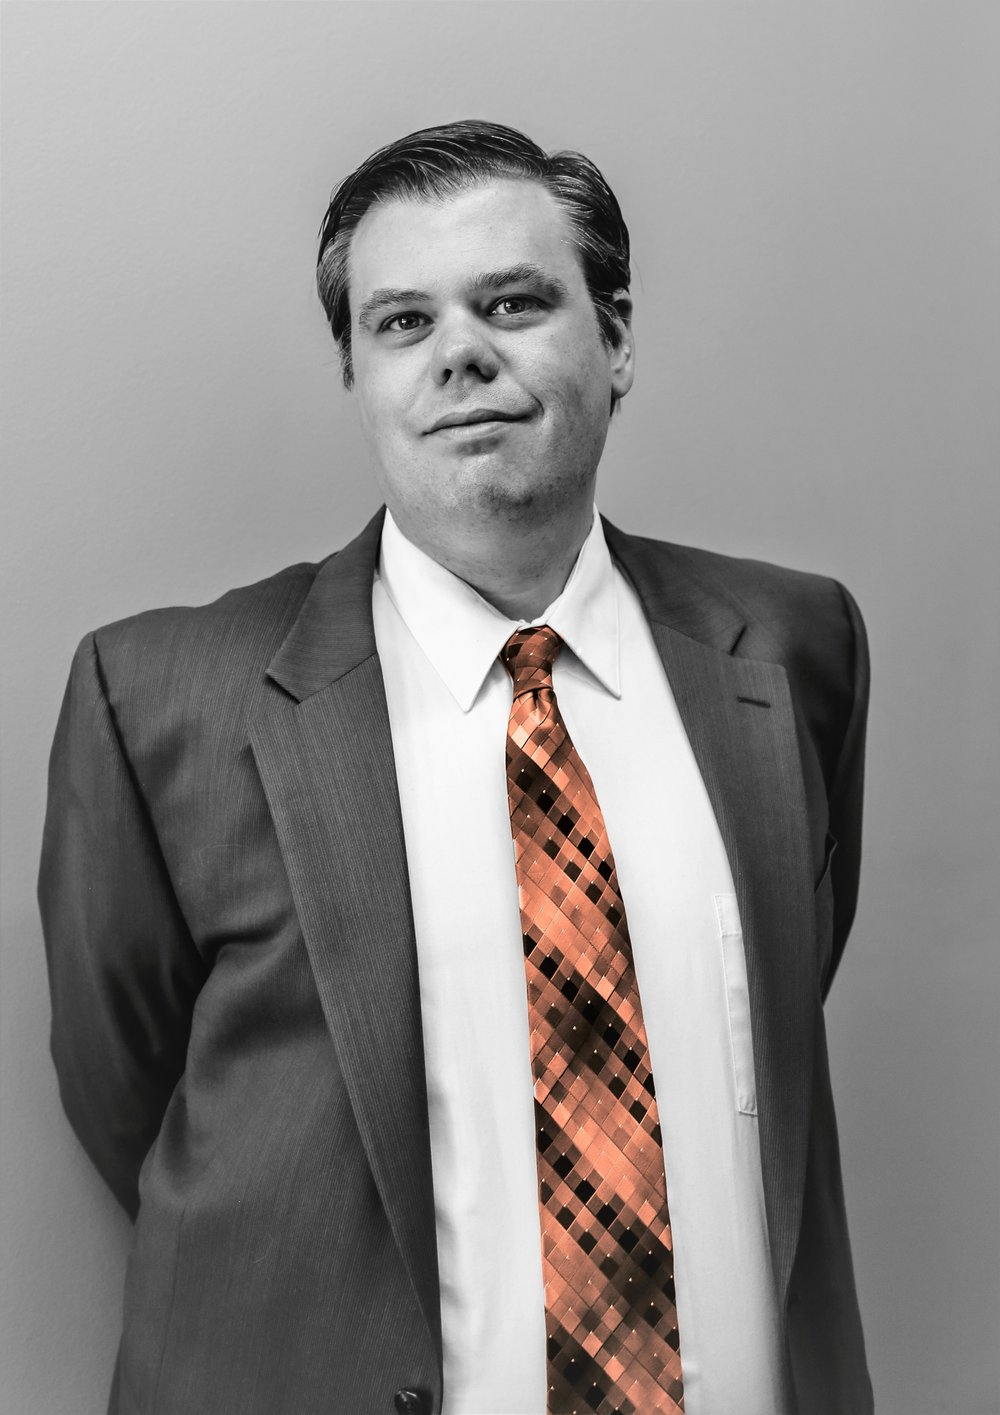 Robert Houton is the Of Counsel attorney working at JLongtin Law.